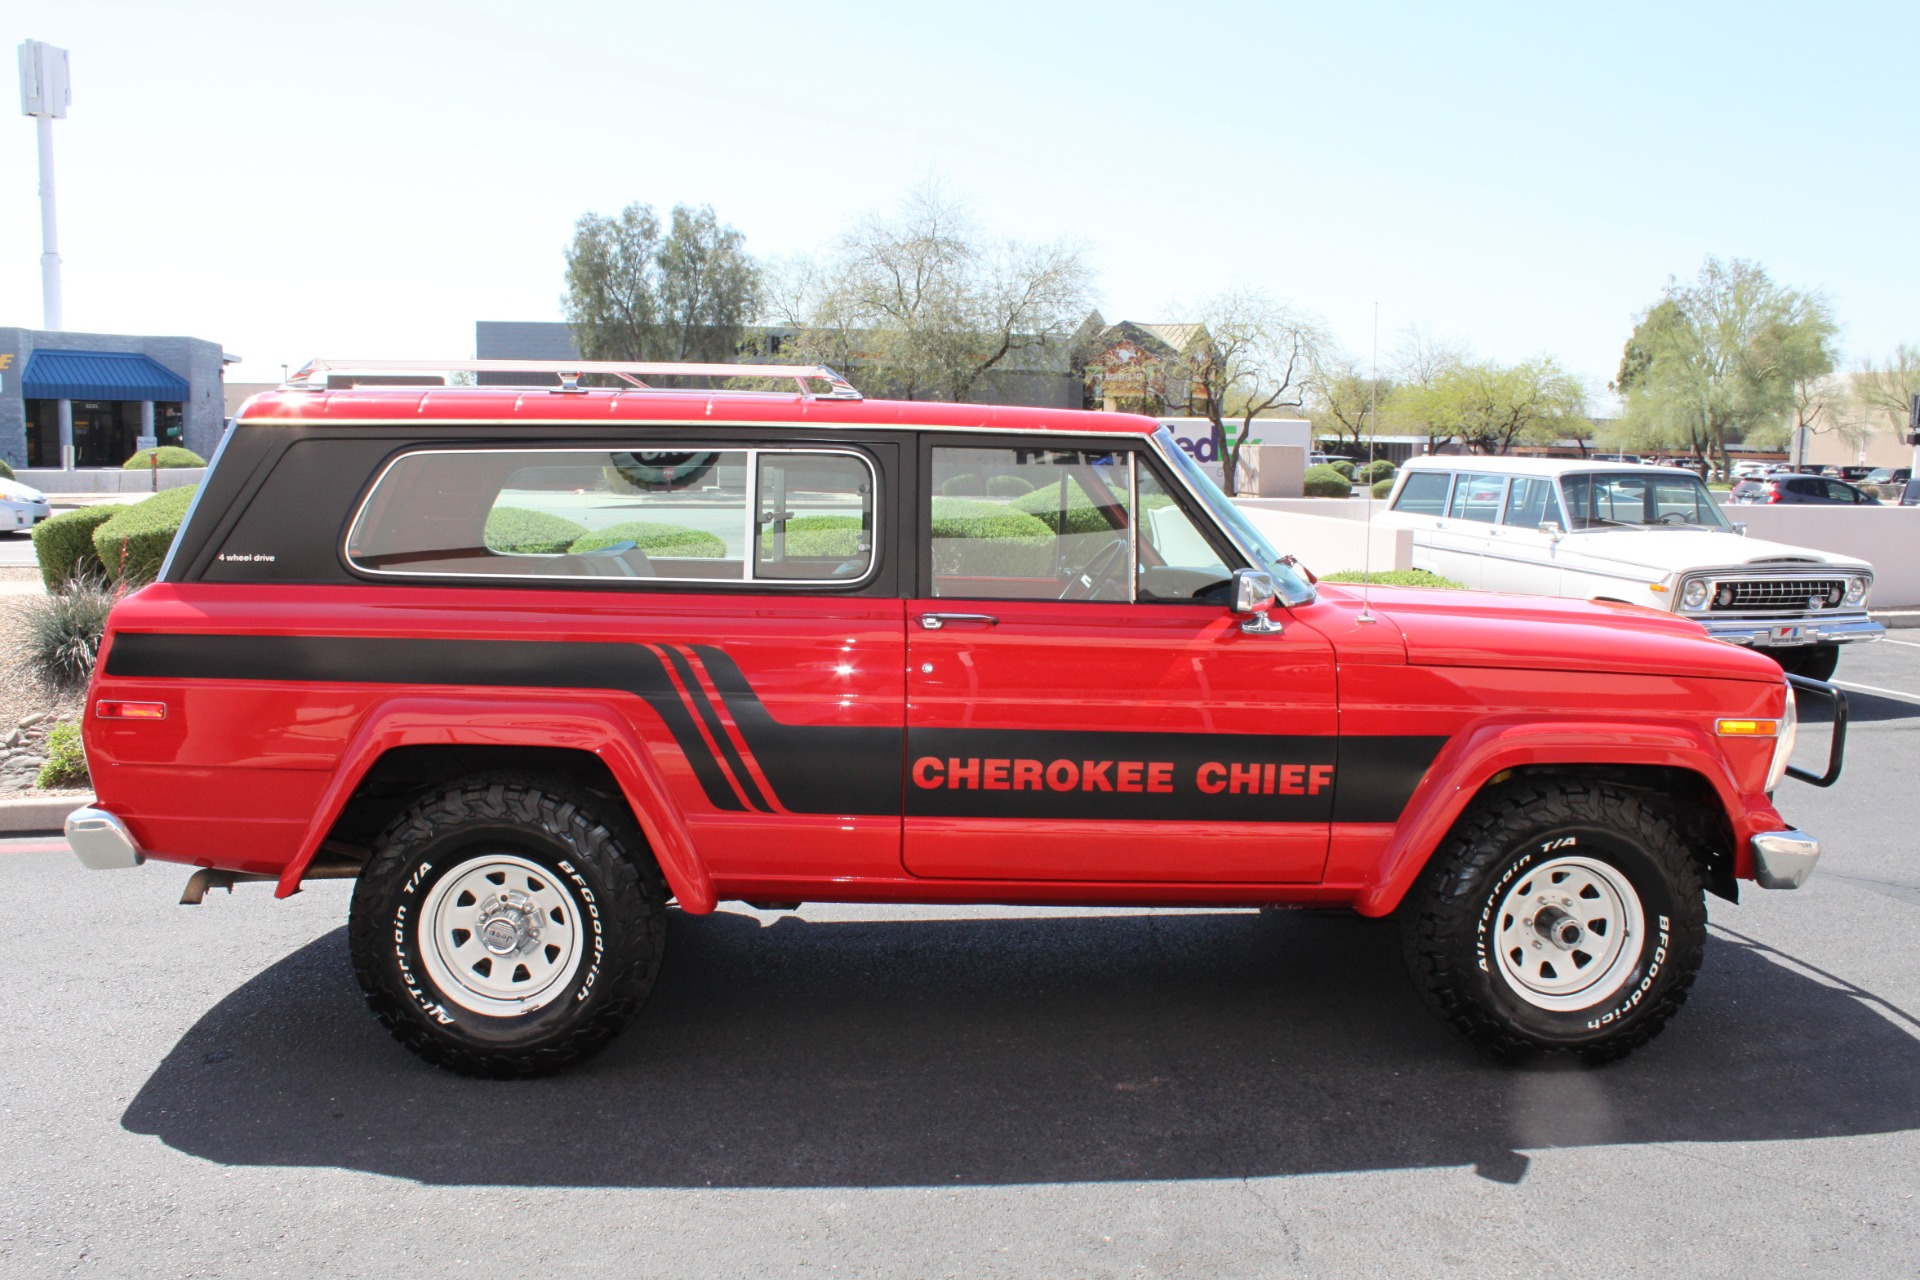 Used-1983-Jeep-Cherokee-Chief-4WD-Chrysler